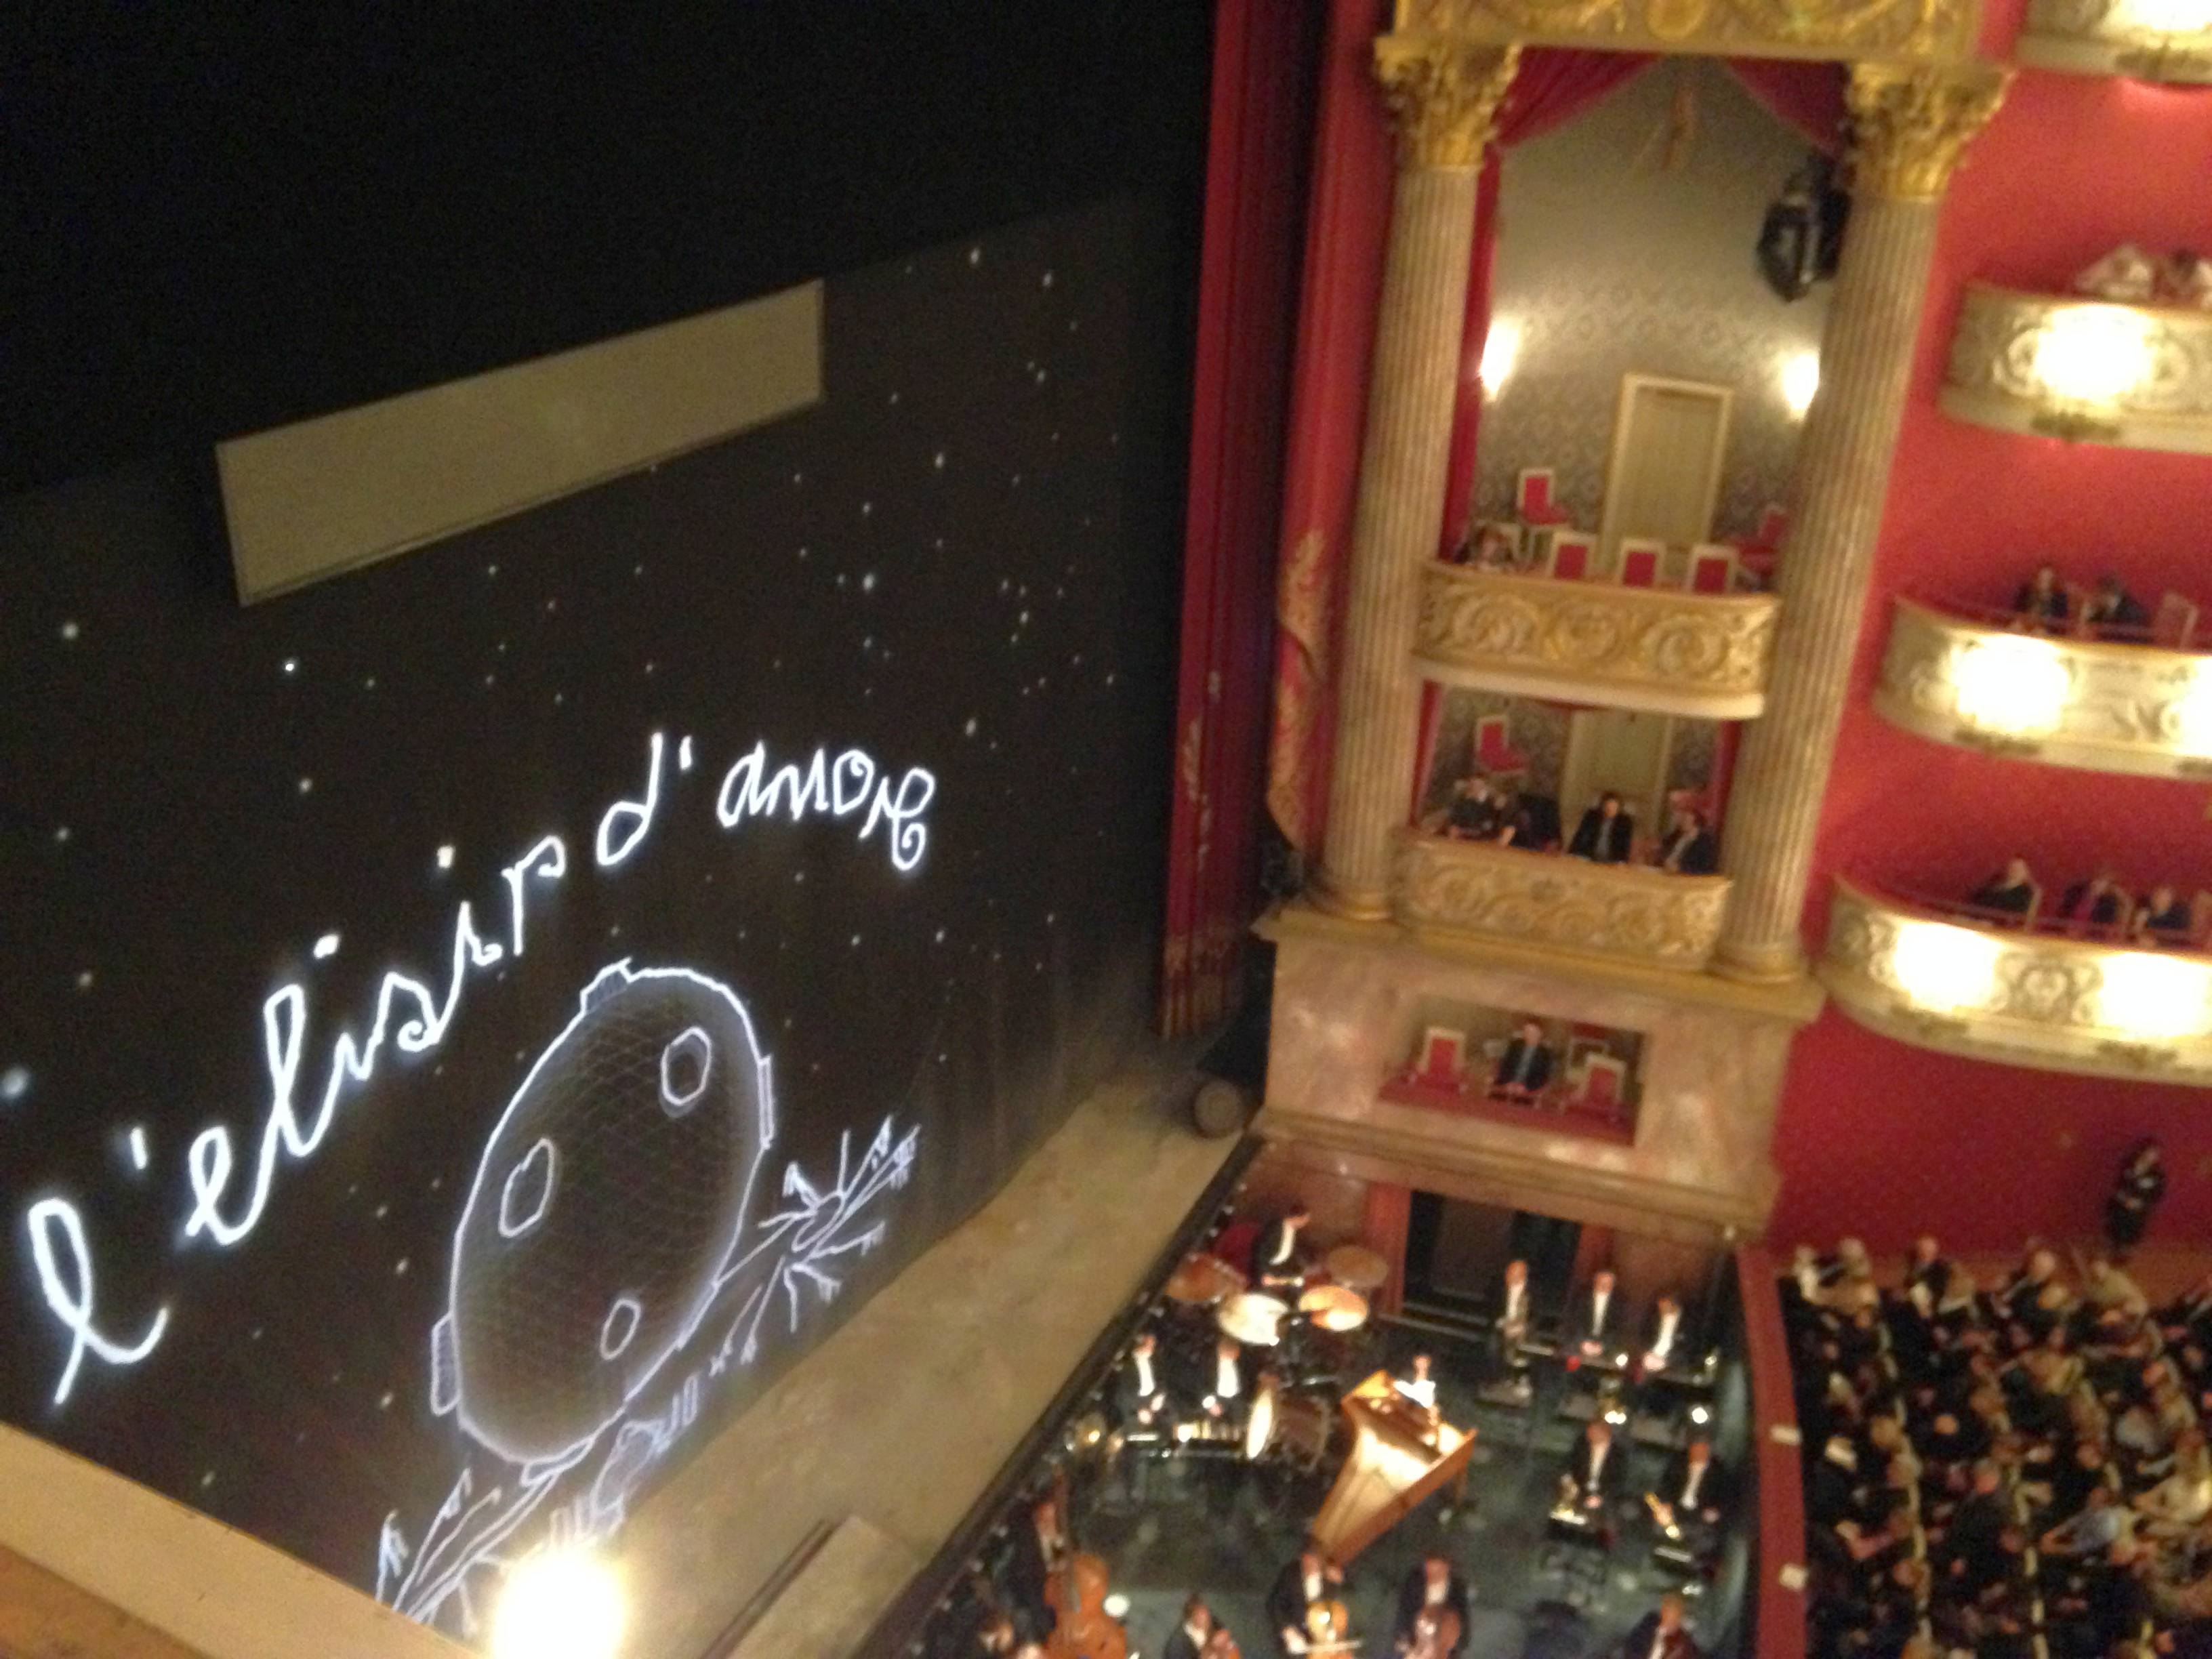 L´elisir d´amore – a nice evening in the opera